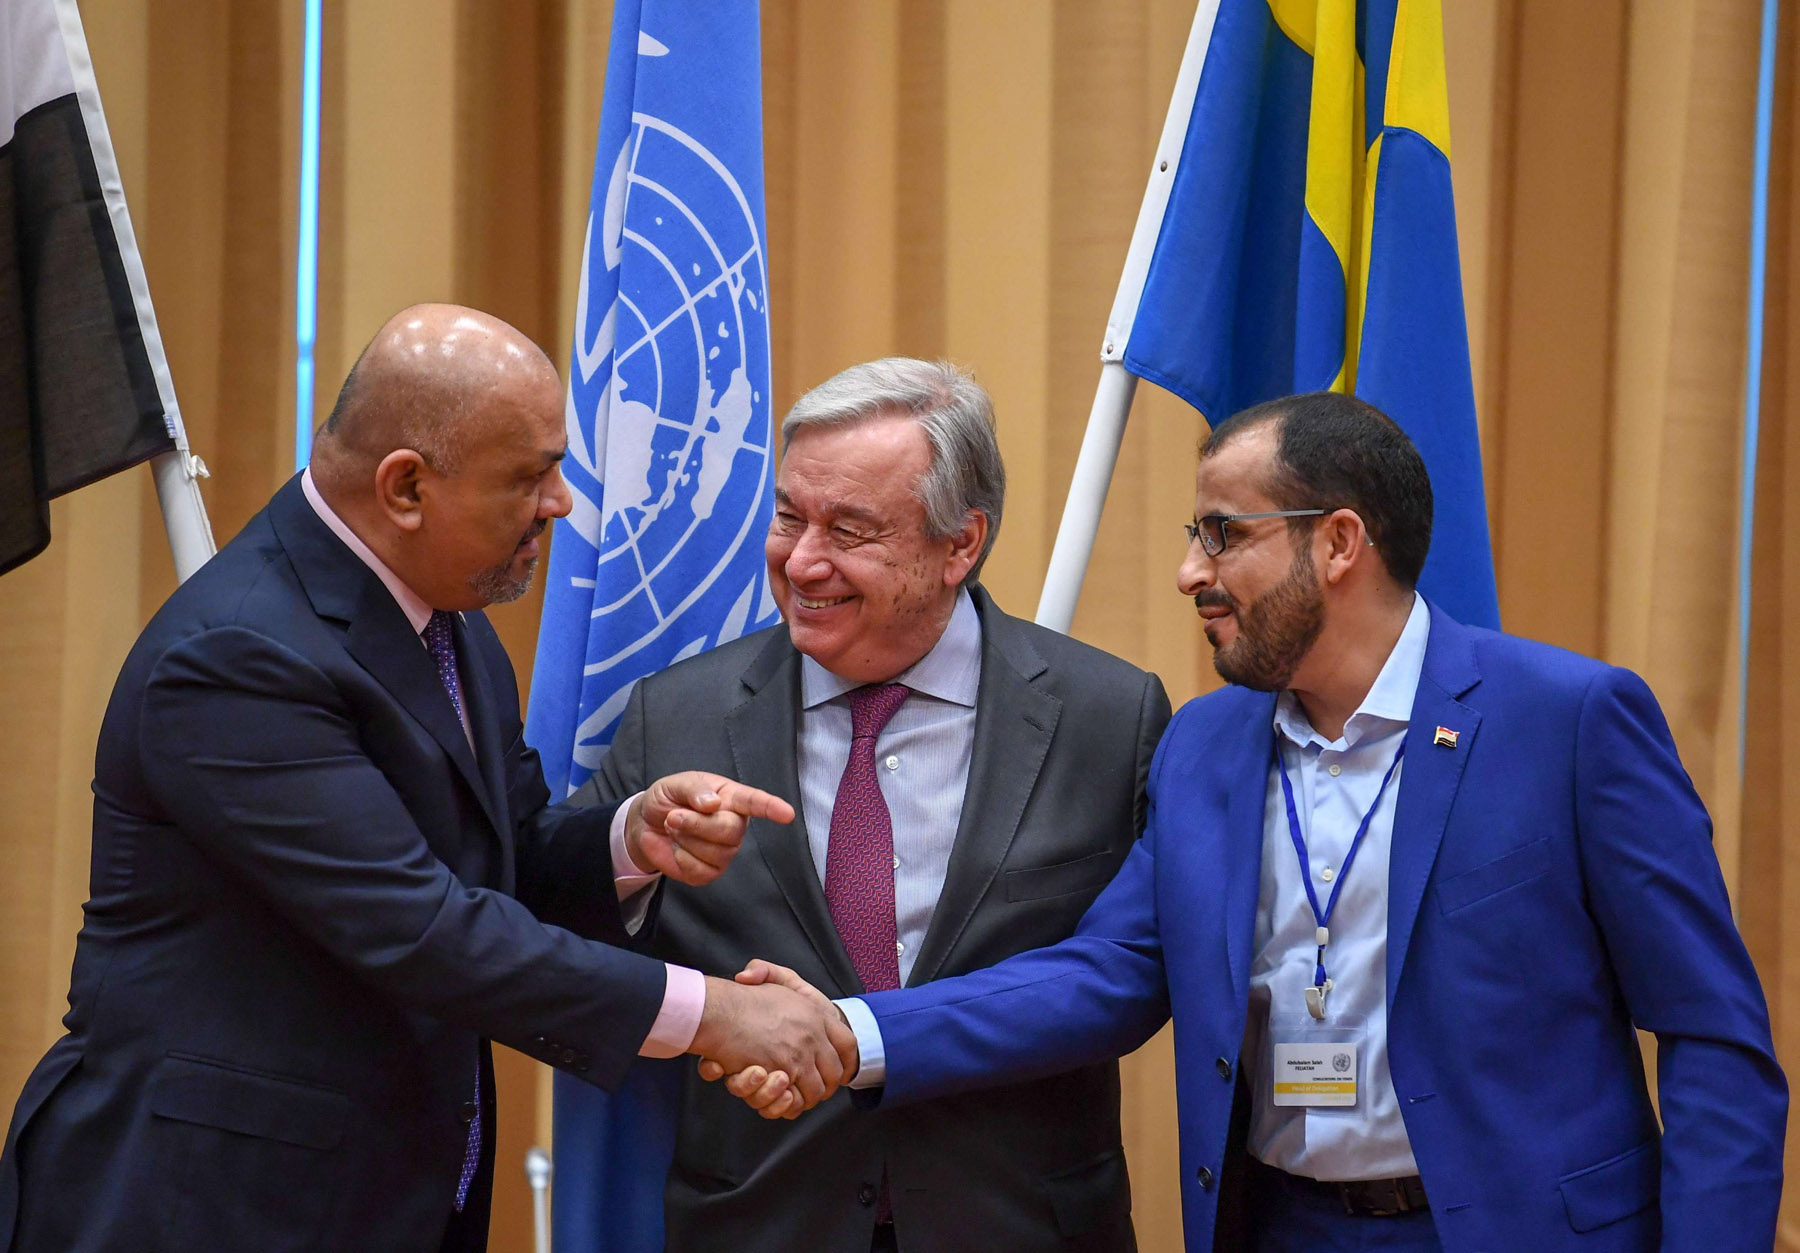 'First step'. Yemeni Foreign Minister Khaled al-Yaman (L) shakes hands with head of Houthi delegation Mohammed Abdulsalam (R) while UN Secretary-General Antonio Guterres looks on during the Yemen peace talks closing news conference in Rimbo, north of Stockholm, December 13.(AFP)